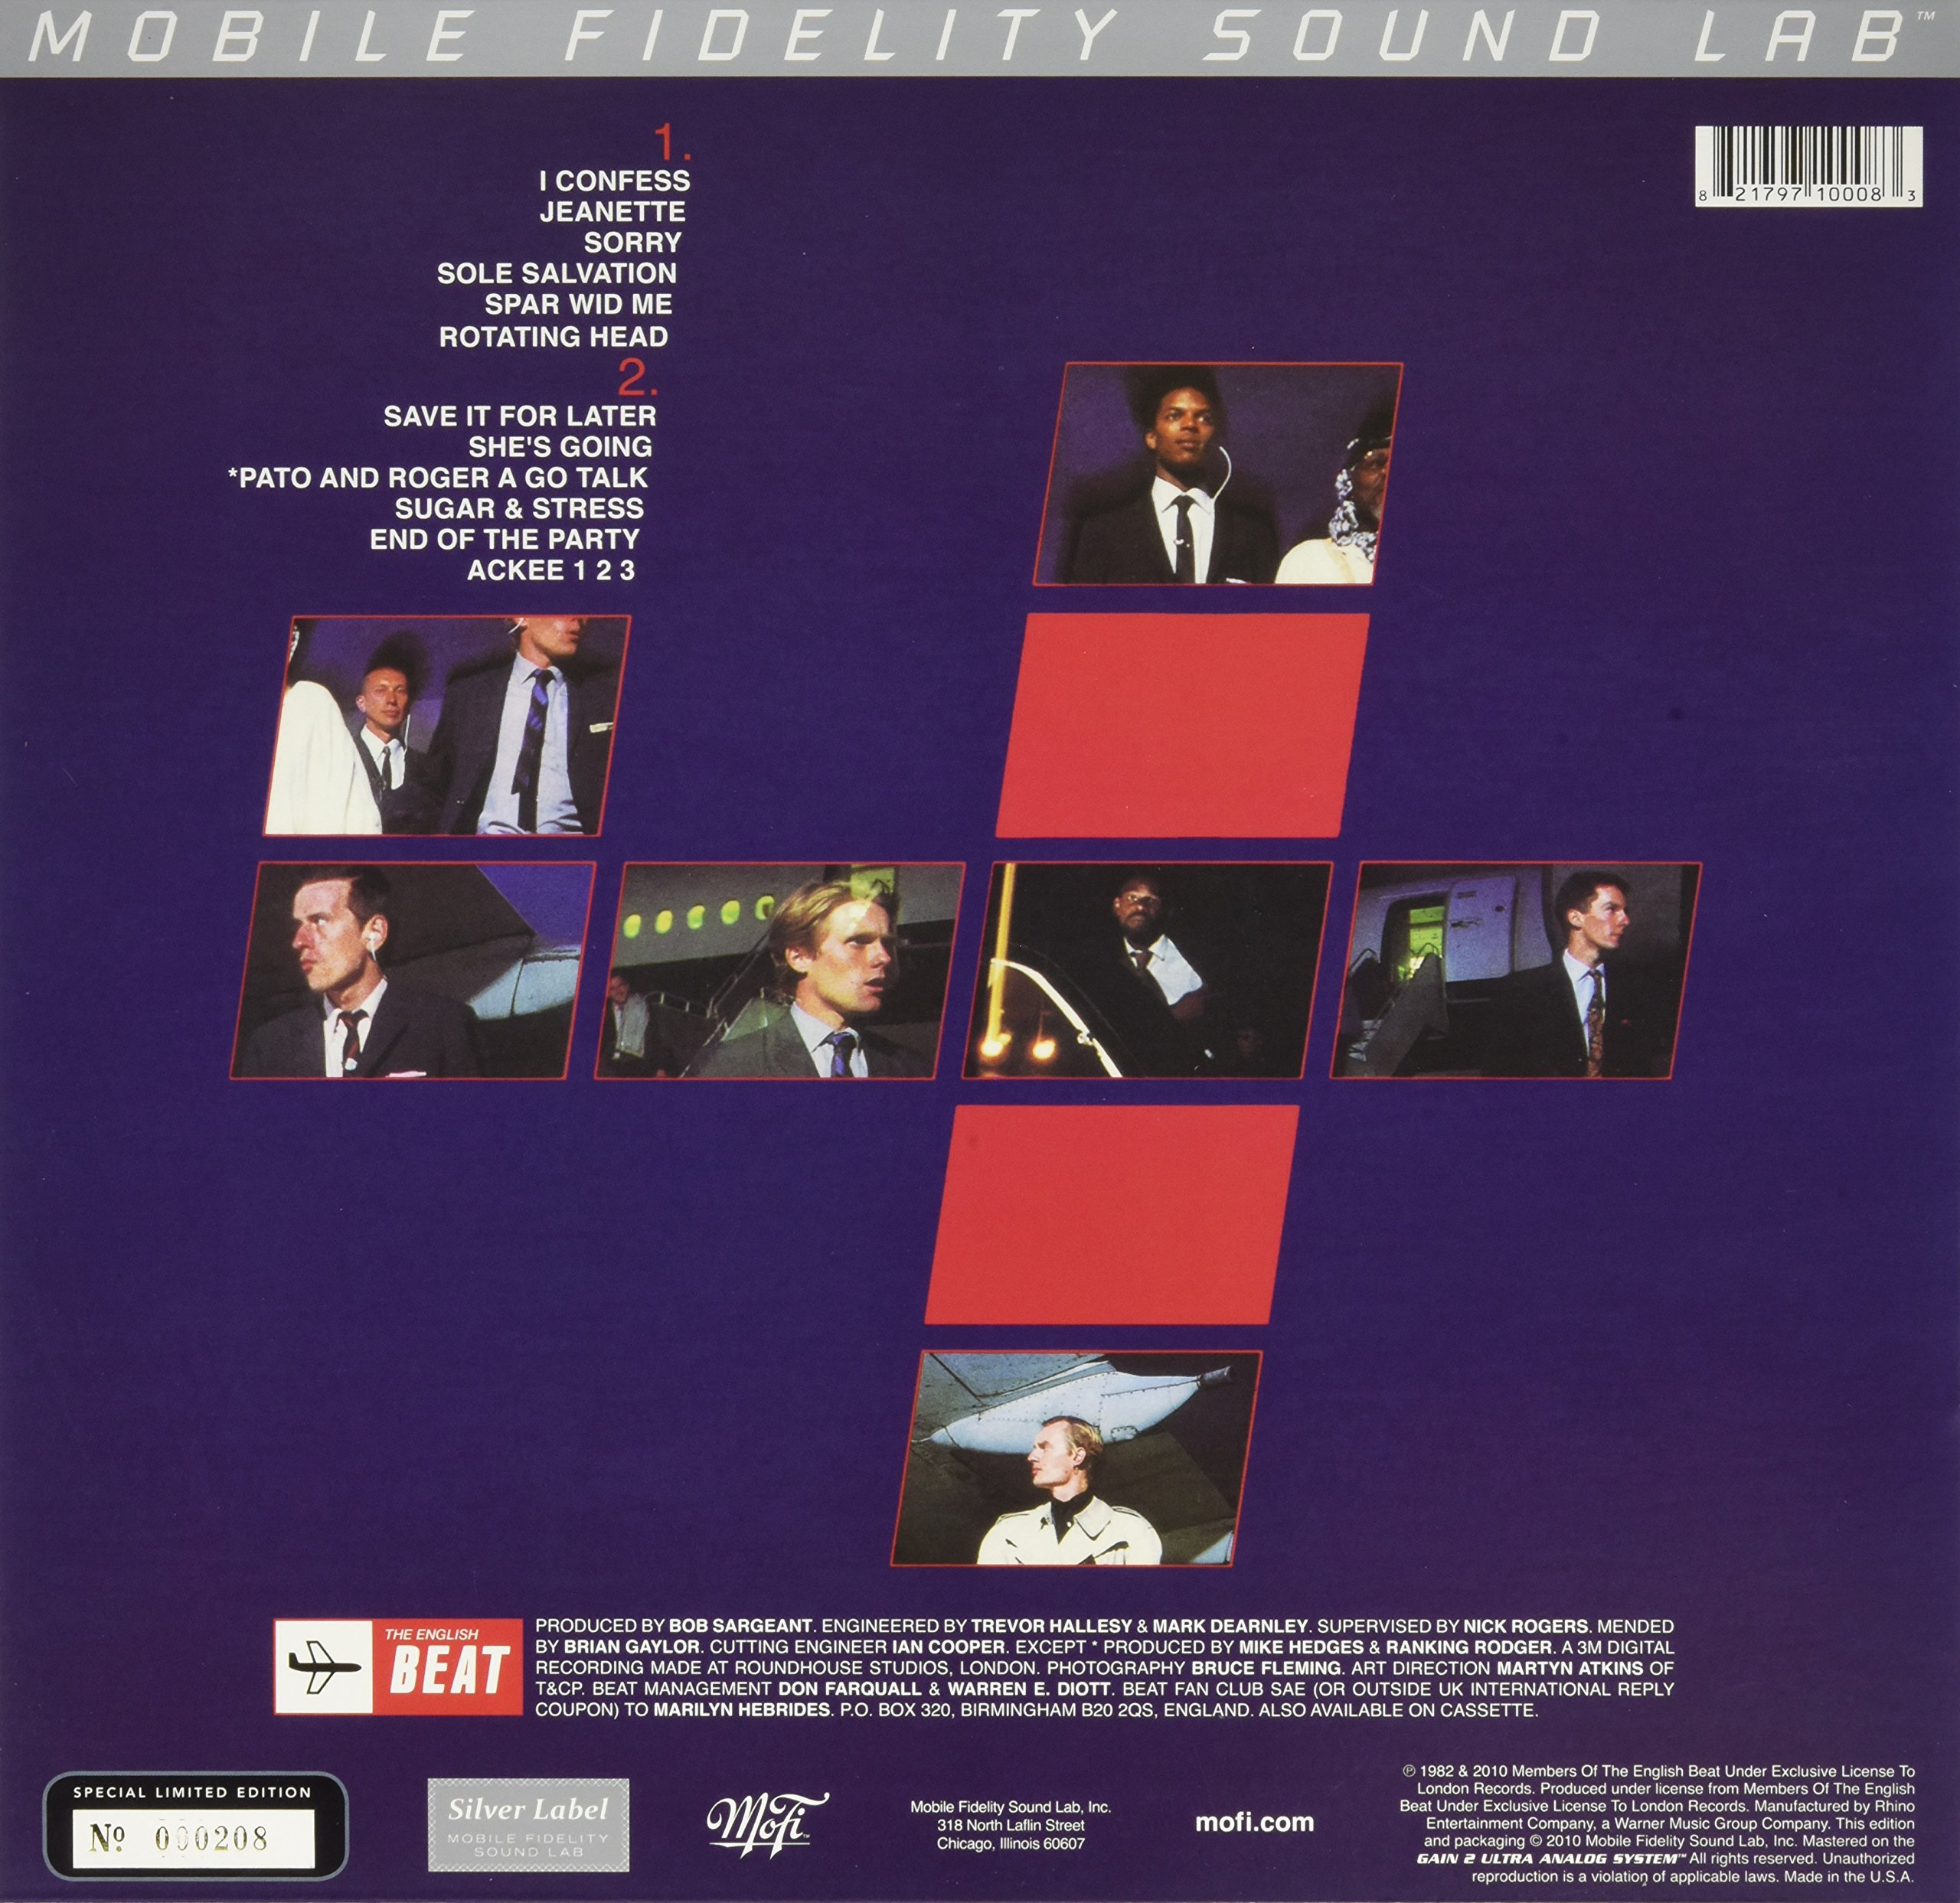 Special Beat Service by Mobile Fidelity